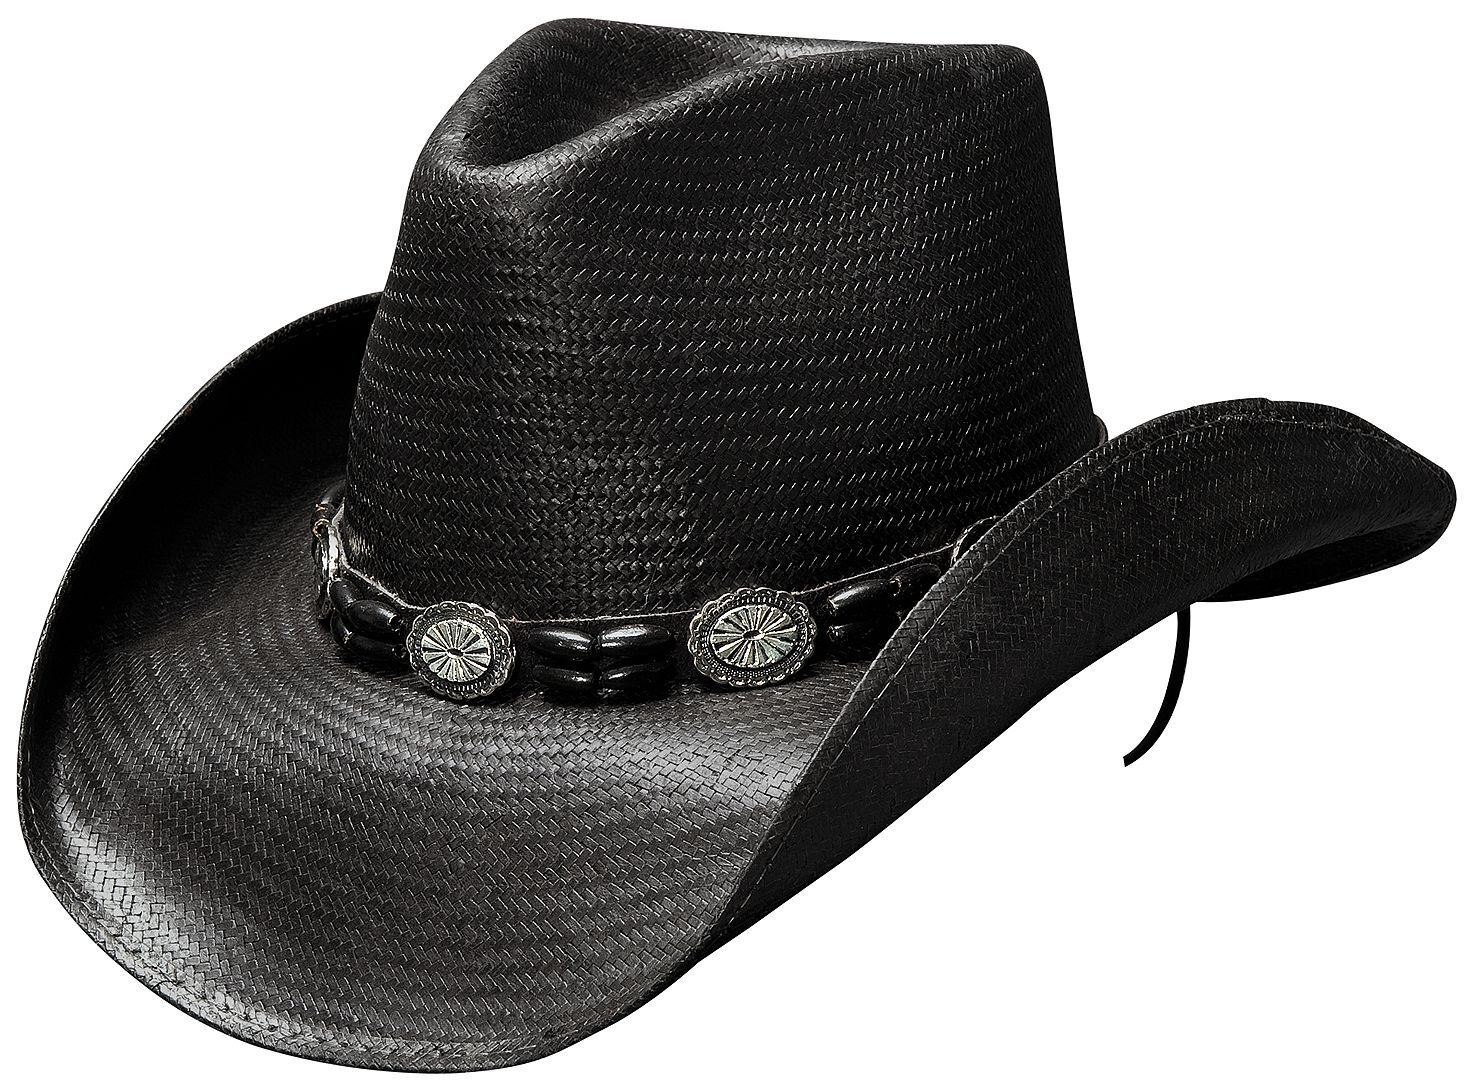 Cowboy Hat Straw Hat Cowboy Hat Hat with hatband Black//White Flamed